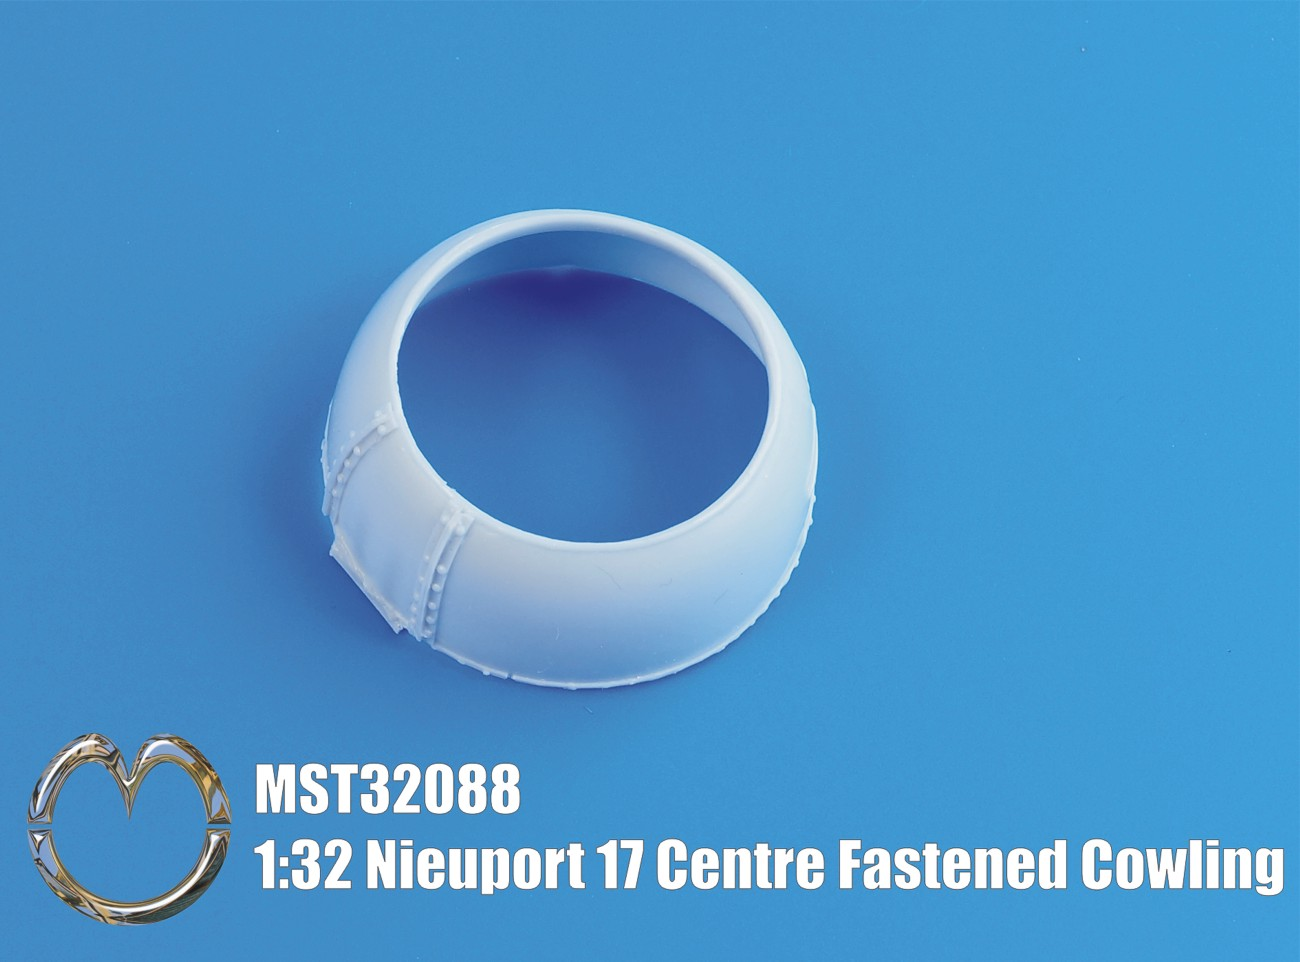 32088 Nieuport 17 Centre Fastened Cowling